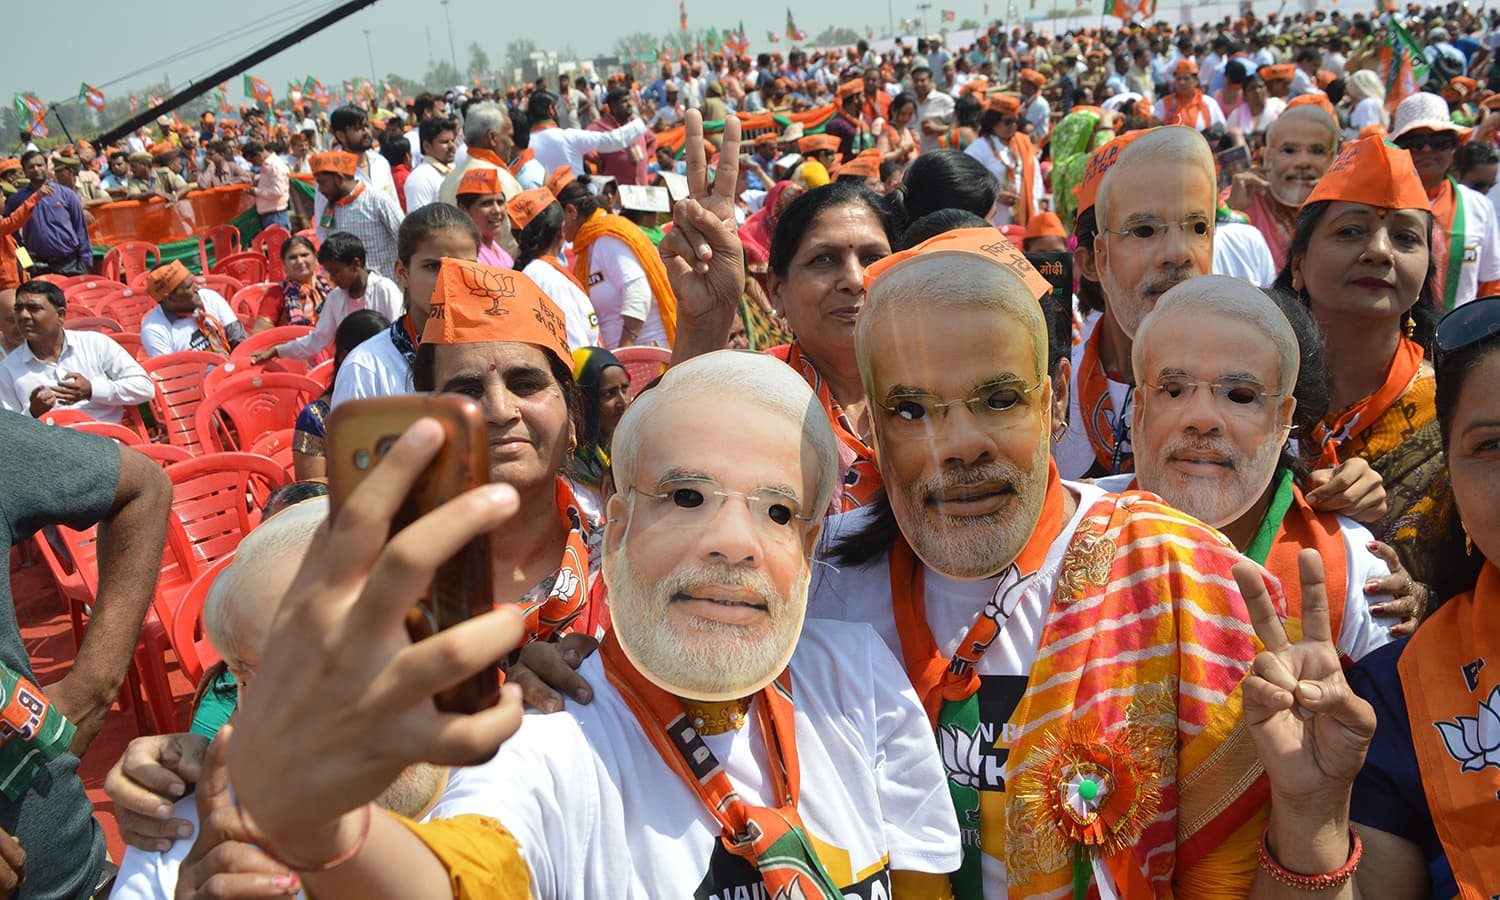 Bharatiya Janata Party supporters take selfies as they listen to Narendra Modi deliver a speech during a rally in Meerut in Uttar Pradesh on March 28, 2019. ─ AFP